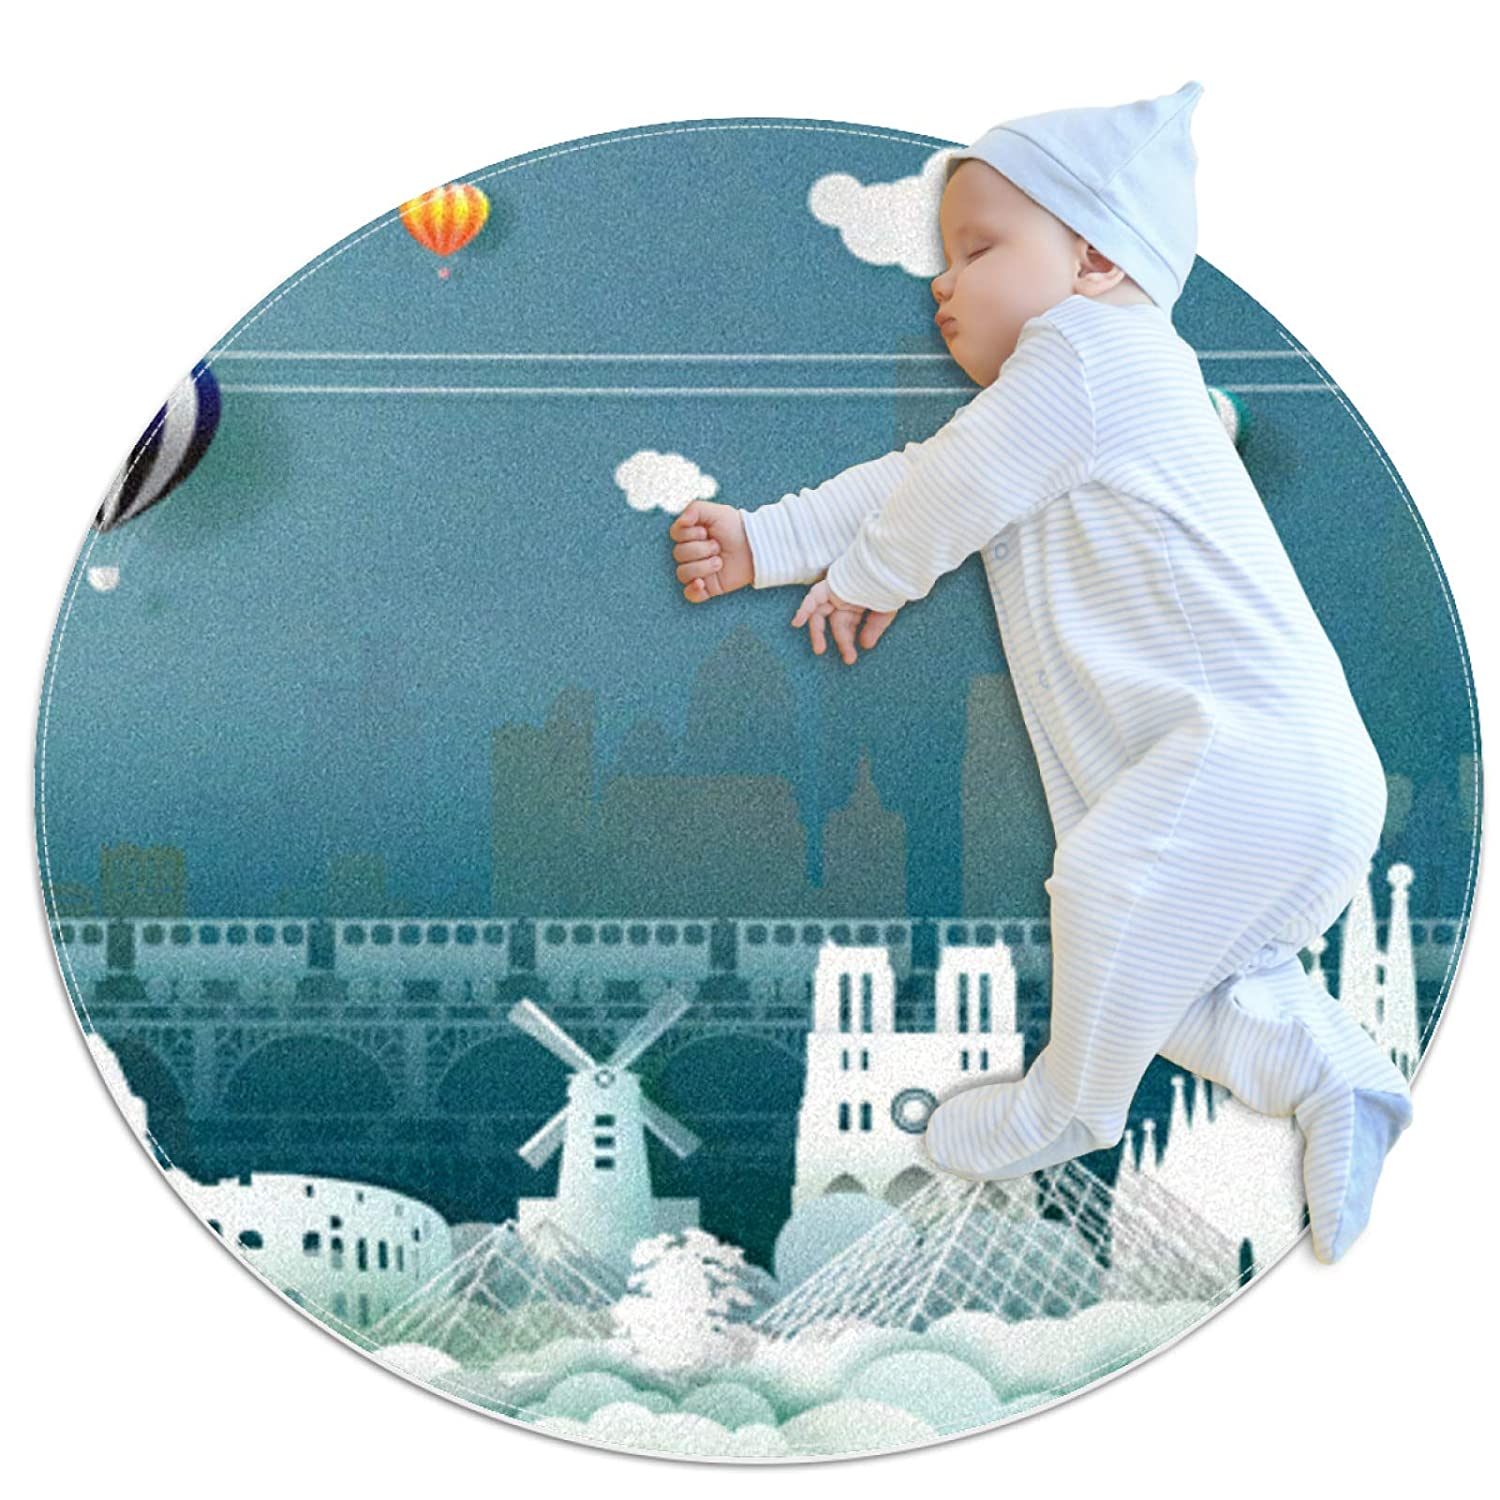 Castle hot air Balloon Windmill Round mat Round Area Rug Art Decor Anti-Slip Machine Washable Children Play pad Living Room Bedroom Oriental Study playroom Super-Soft Carpet 27.6x27.6IN